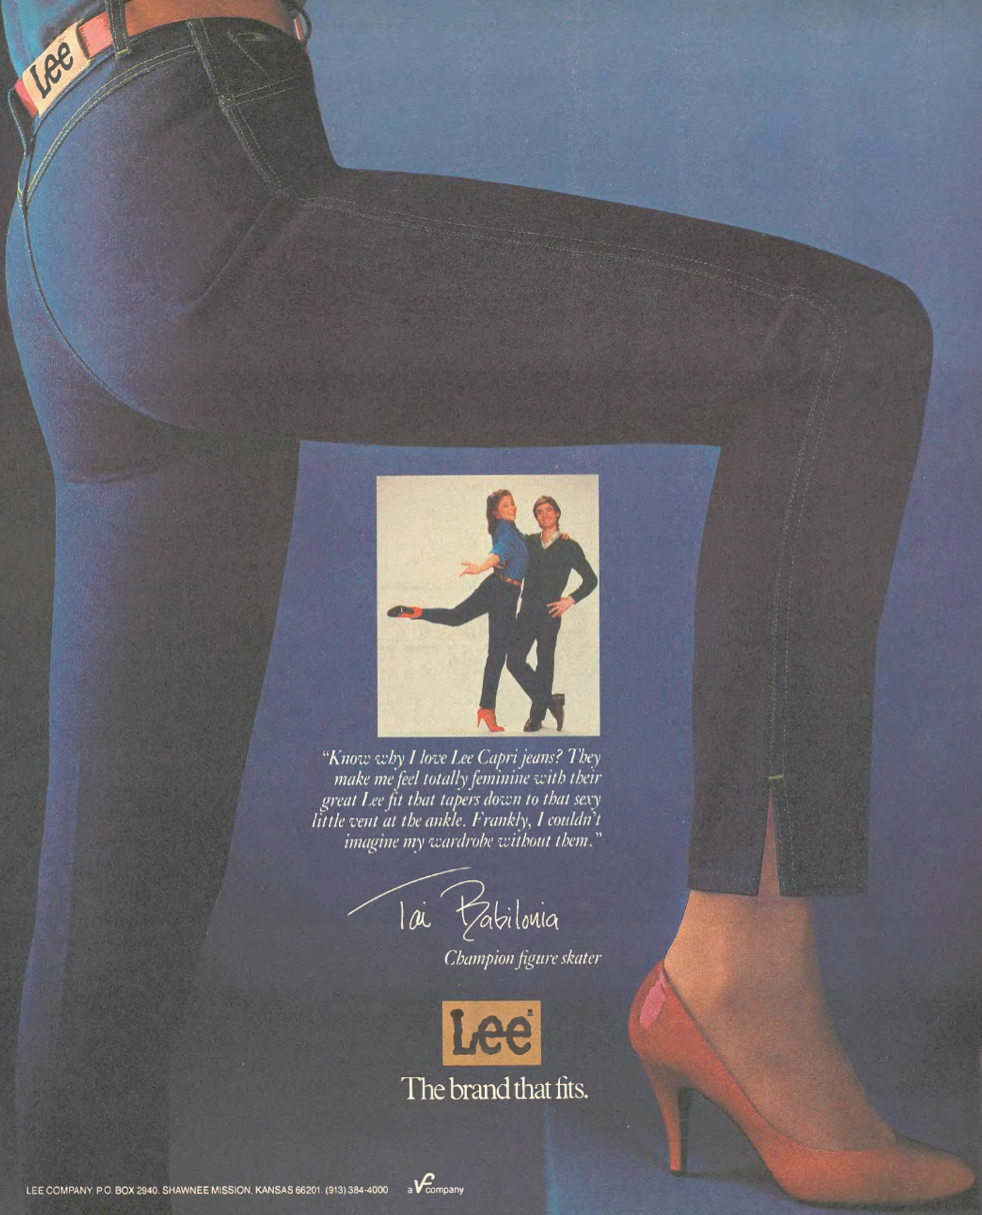 I only included this because it is the flattest arse I have ever seen, selling jeans no less (1983).